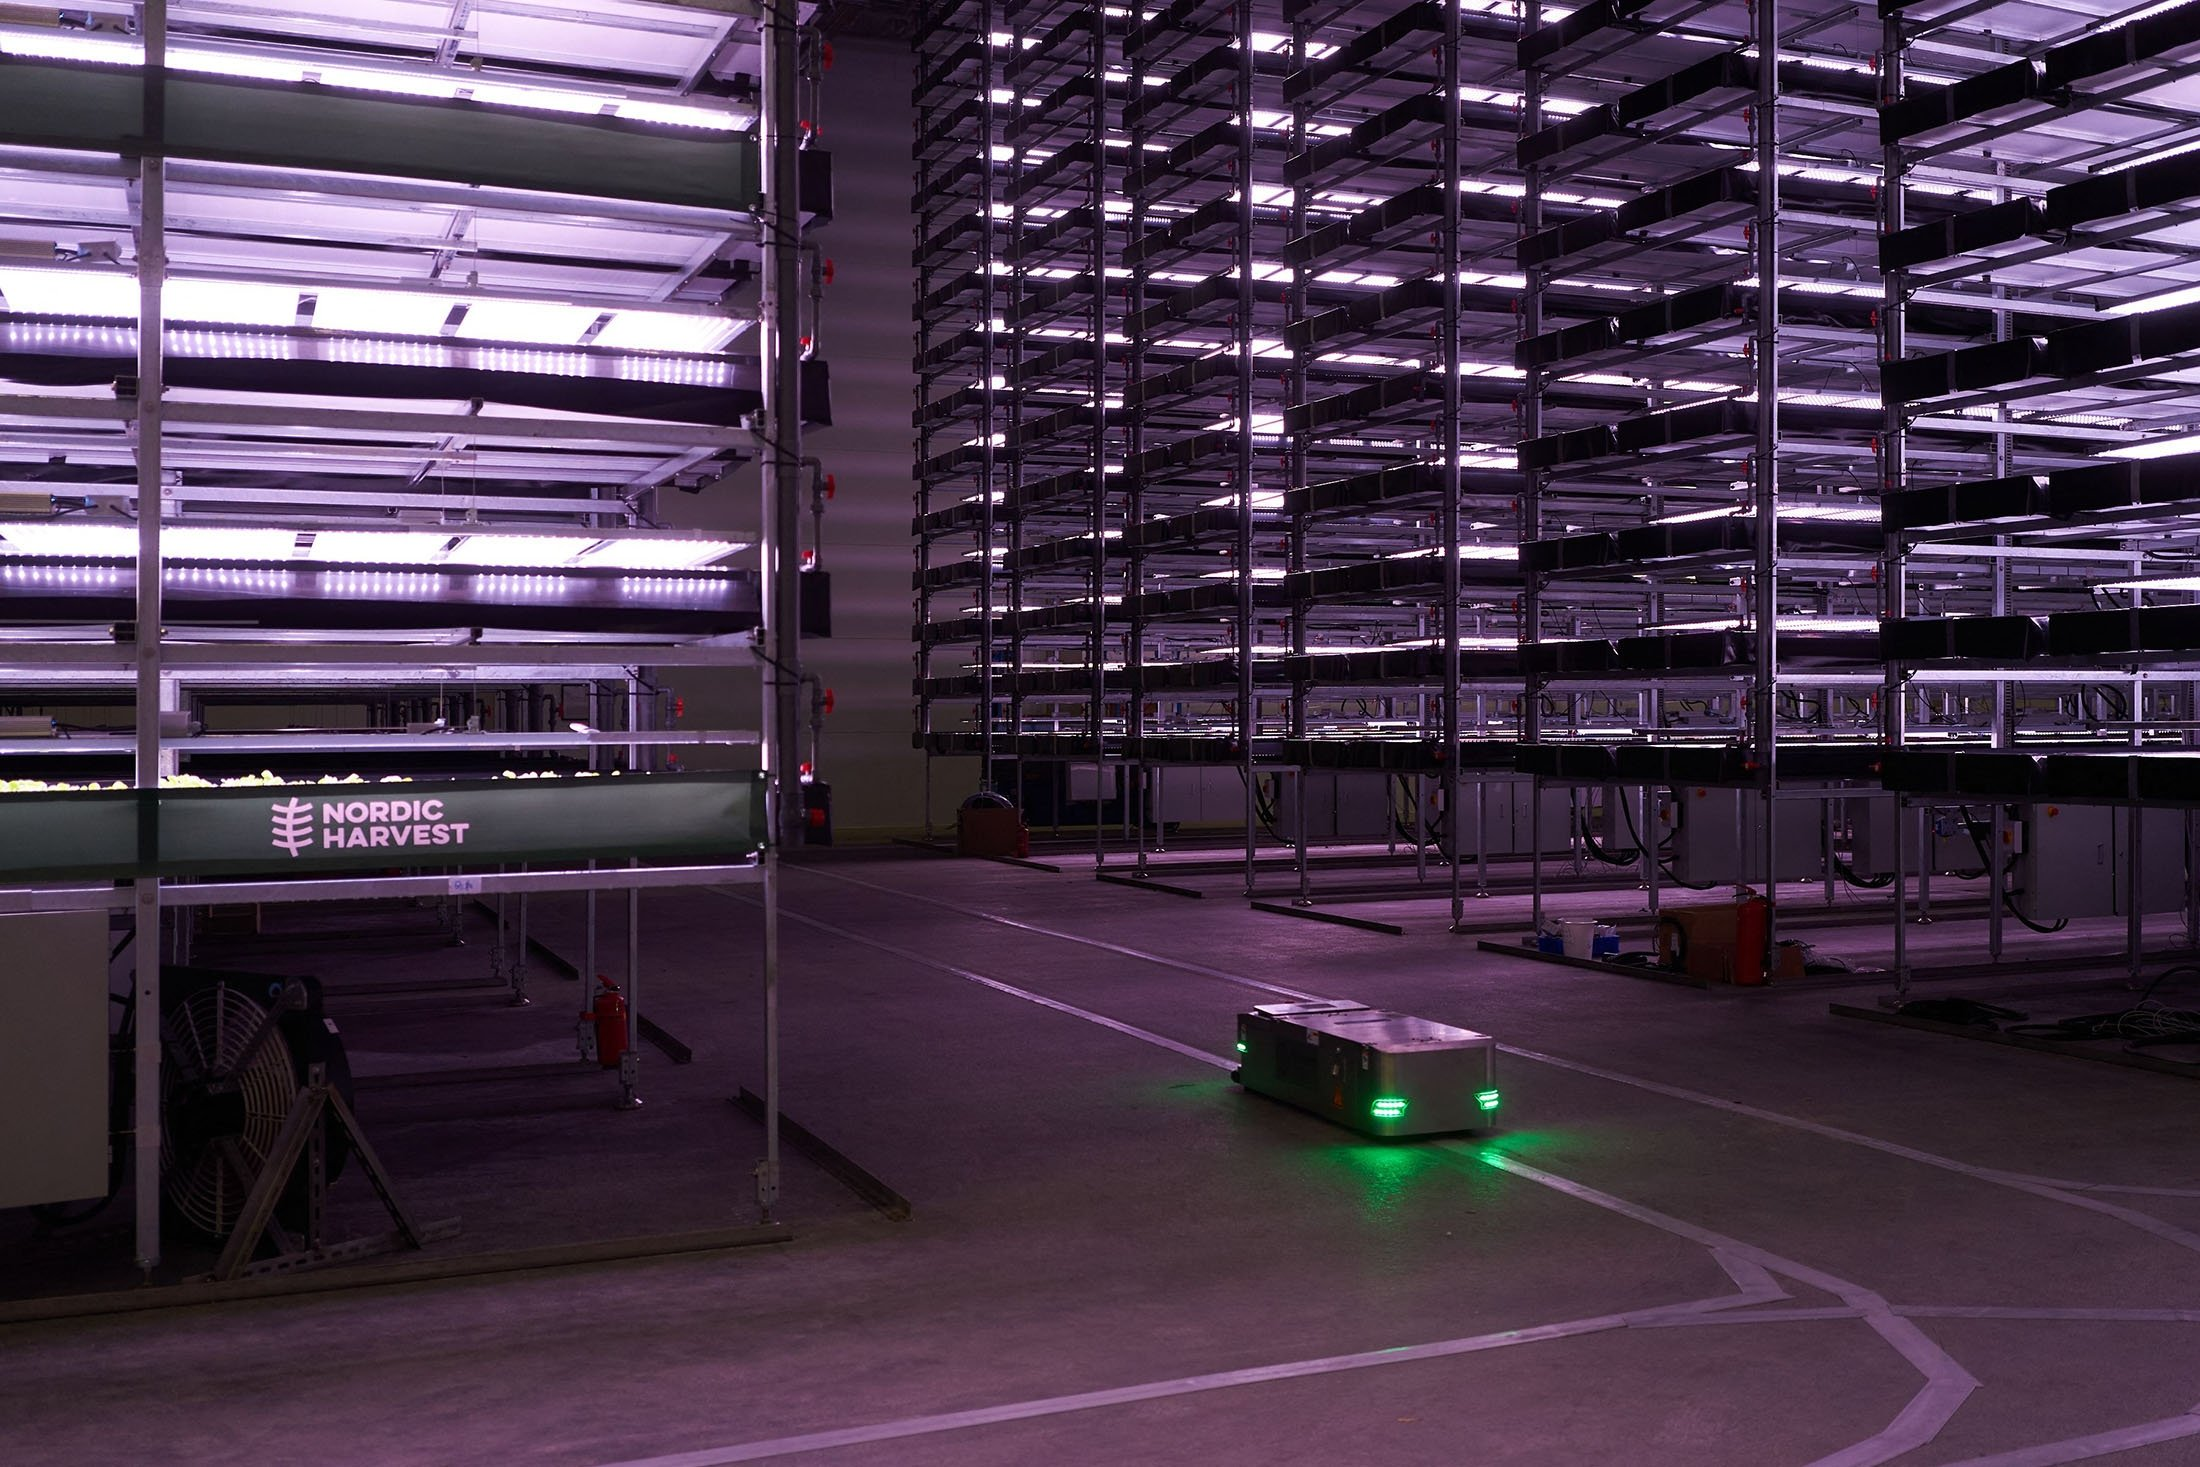 """A robot, used to plant seeds and check the plants while growing, moves past vertical racks at the vertical plant farm """"Nordic Harvest"""" based in Taastrup, a suburb west of Copenhagen, Denmark, Nov. 20, 2020. (AFP Photo)"""